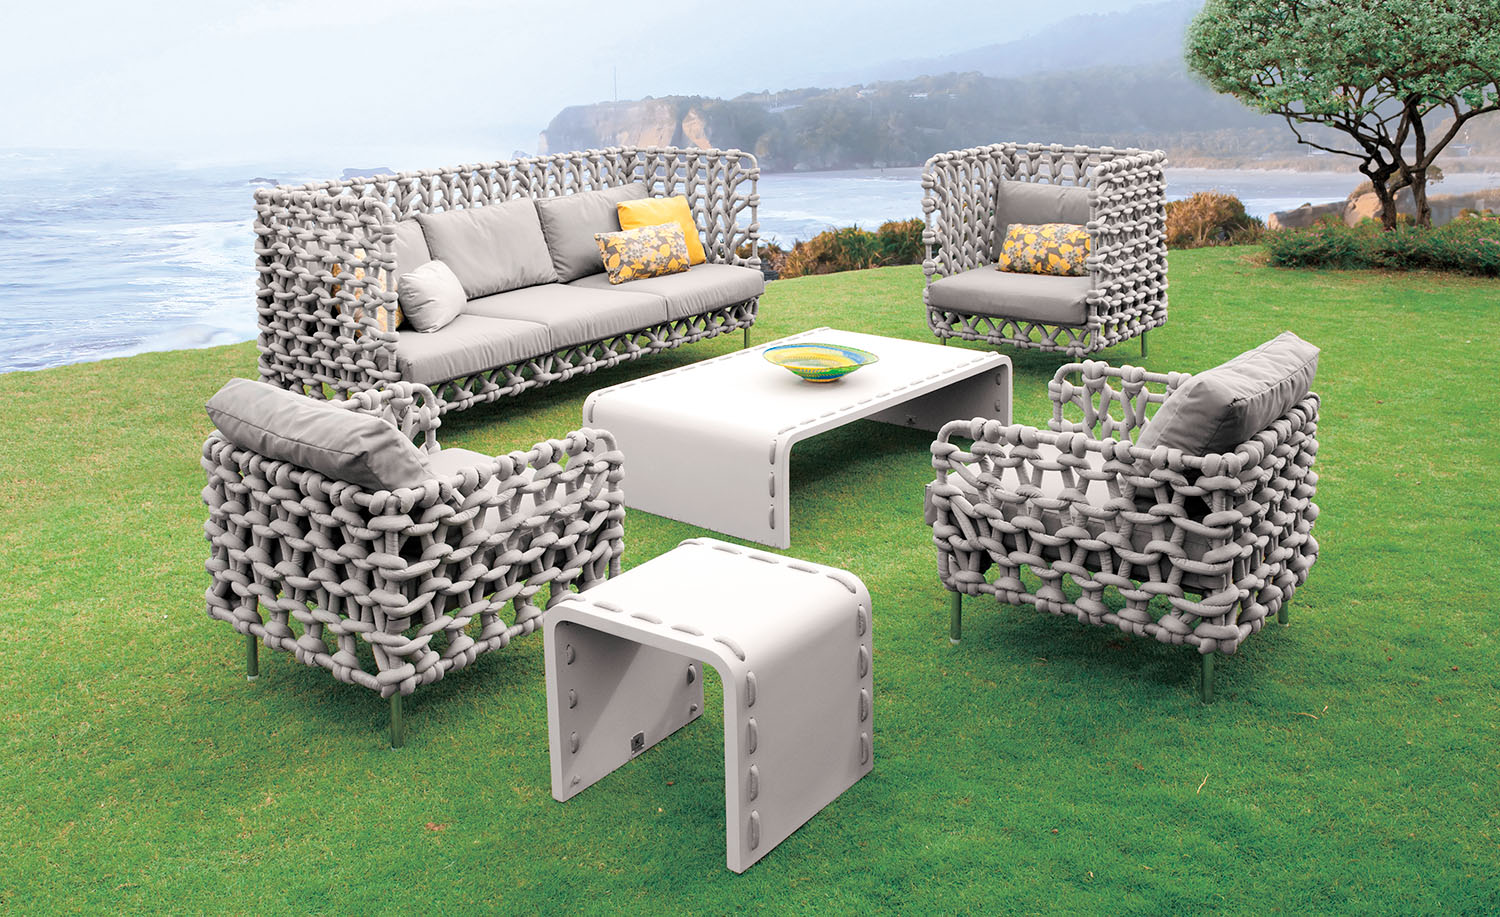 cabaret outdoor luxury furniture - Outdoor Designer Furniture